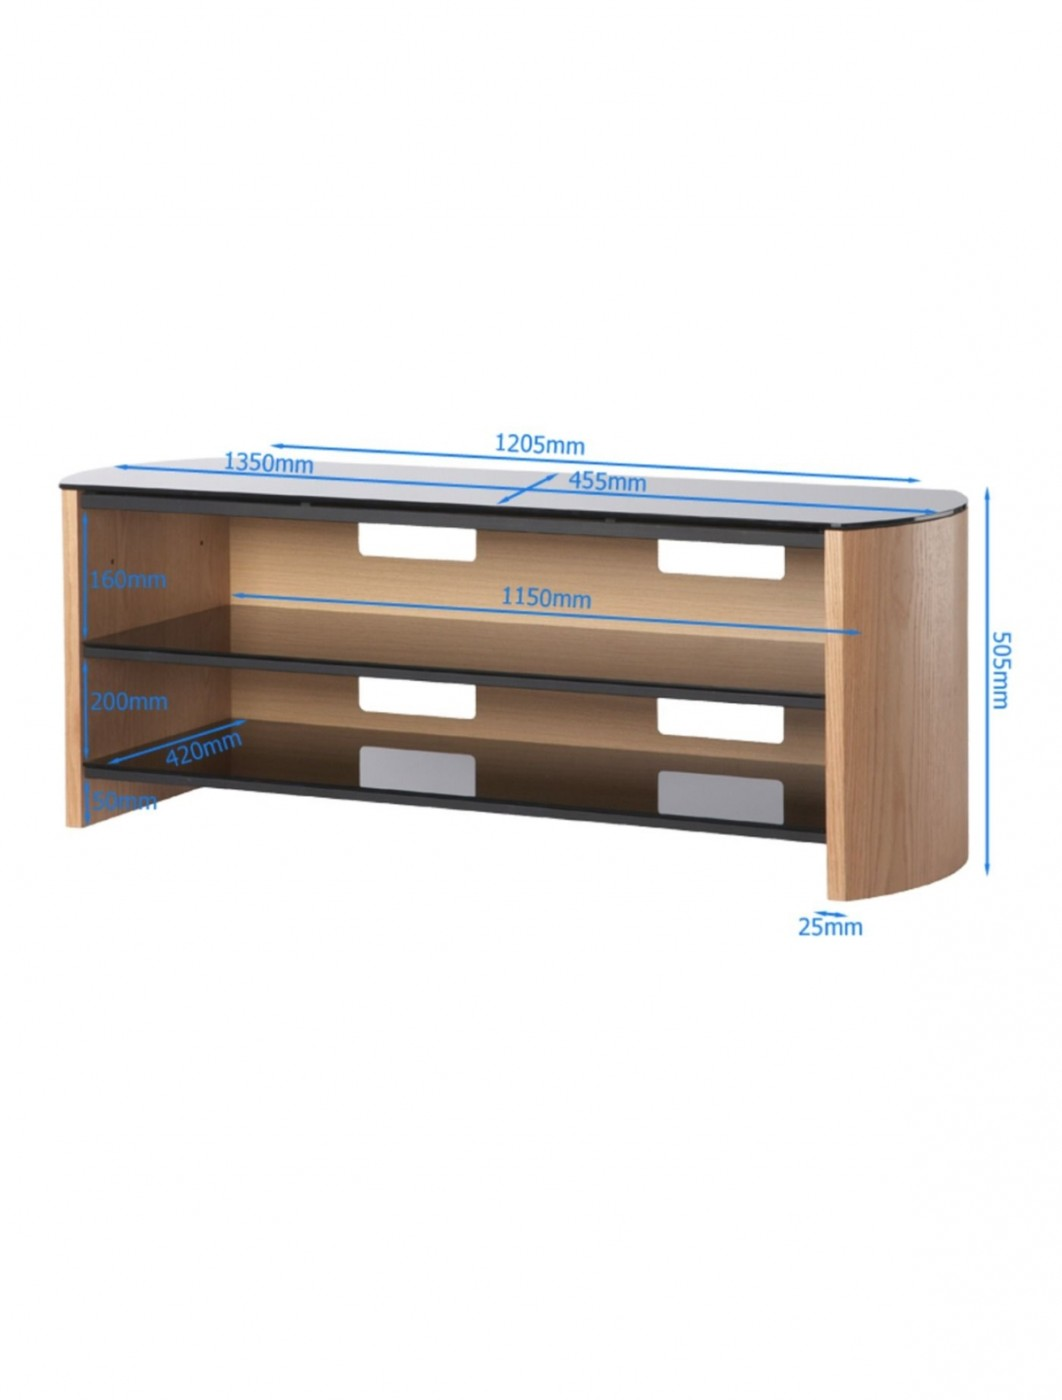 Alphason Finewoods FW1350-LO/B TV Stand